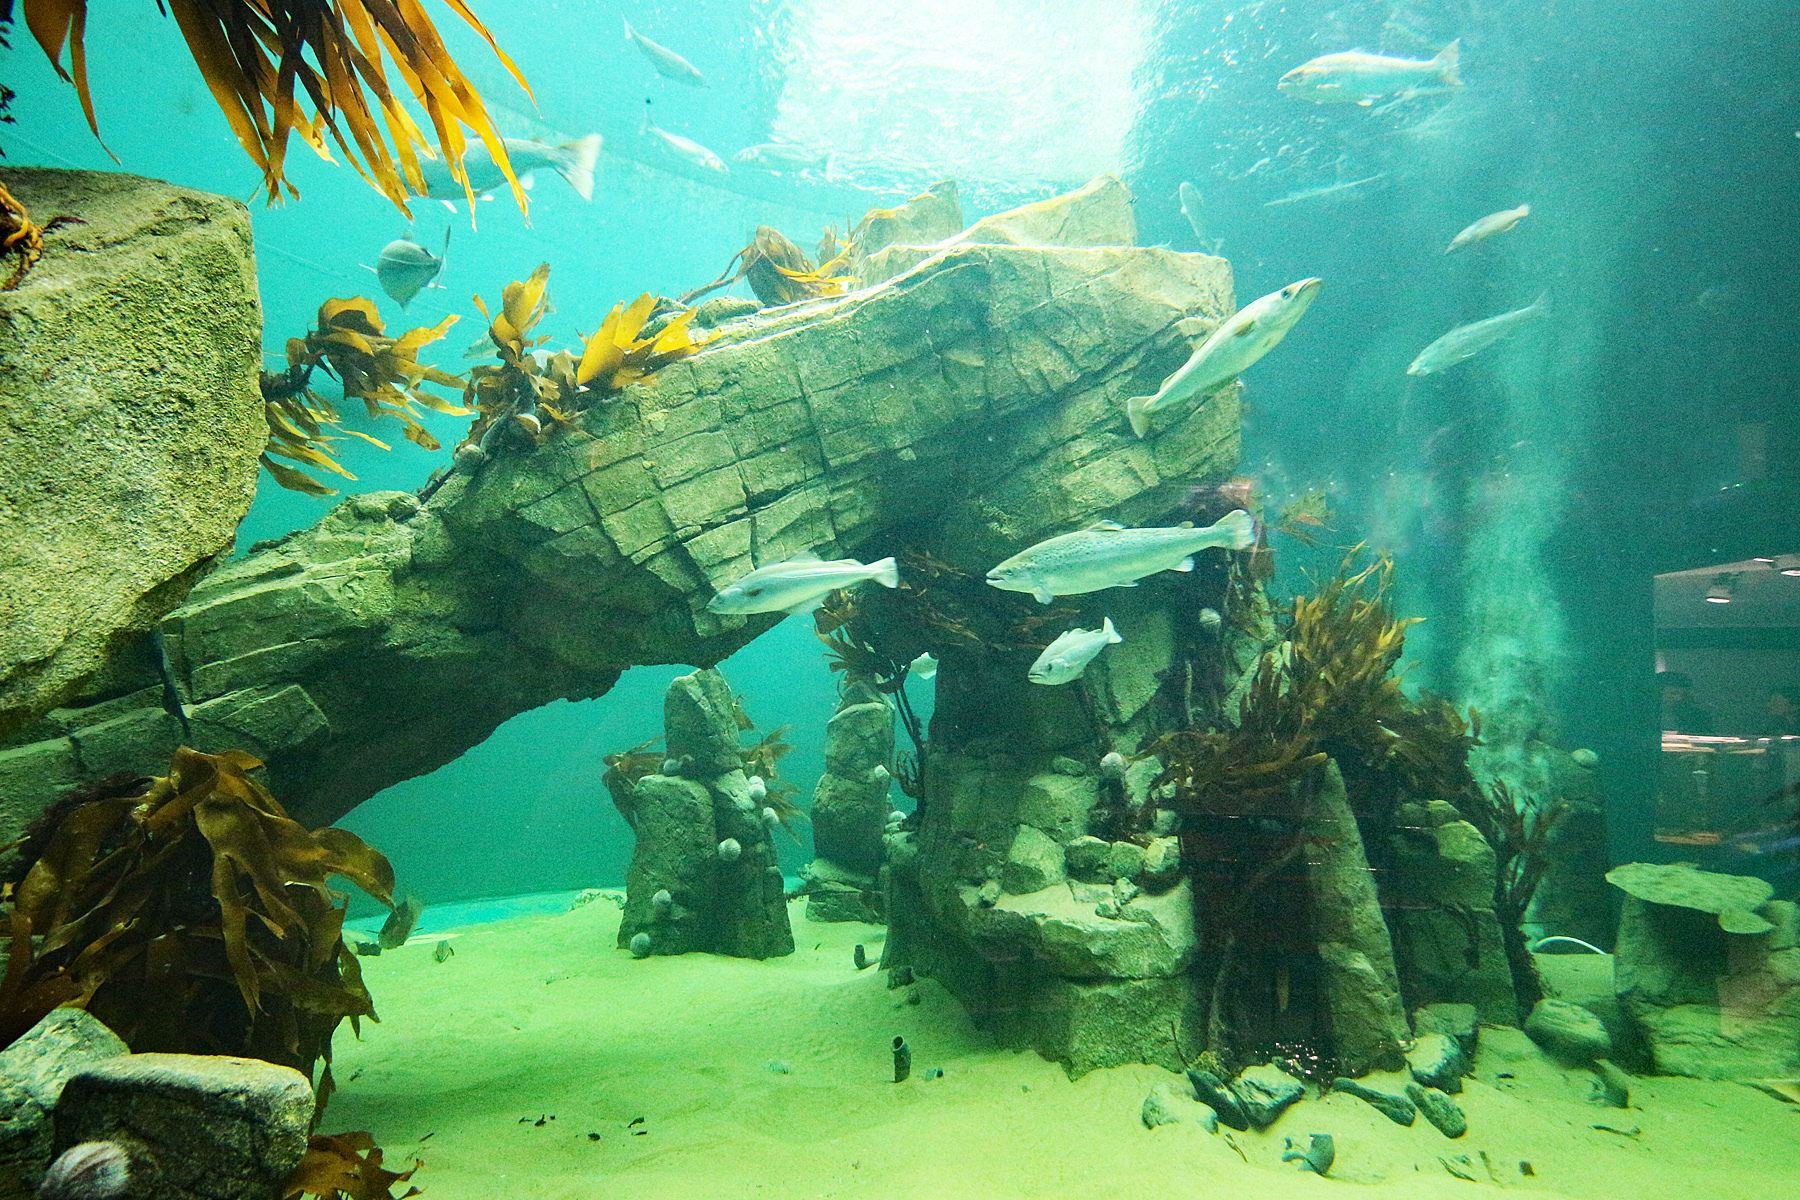 The spring rover ticket will be offered to visitors to Macduff Aquarium